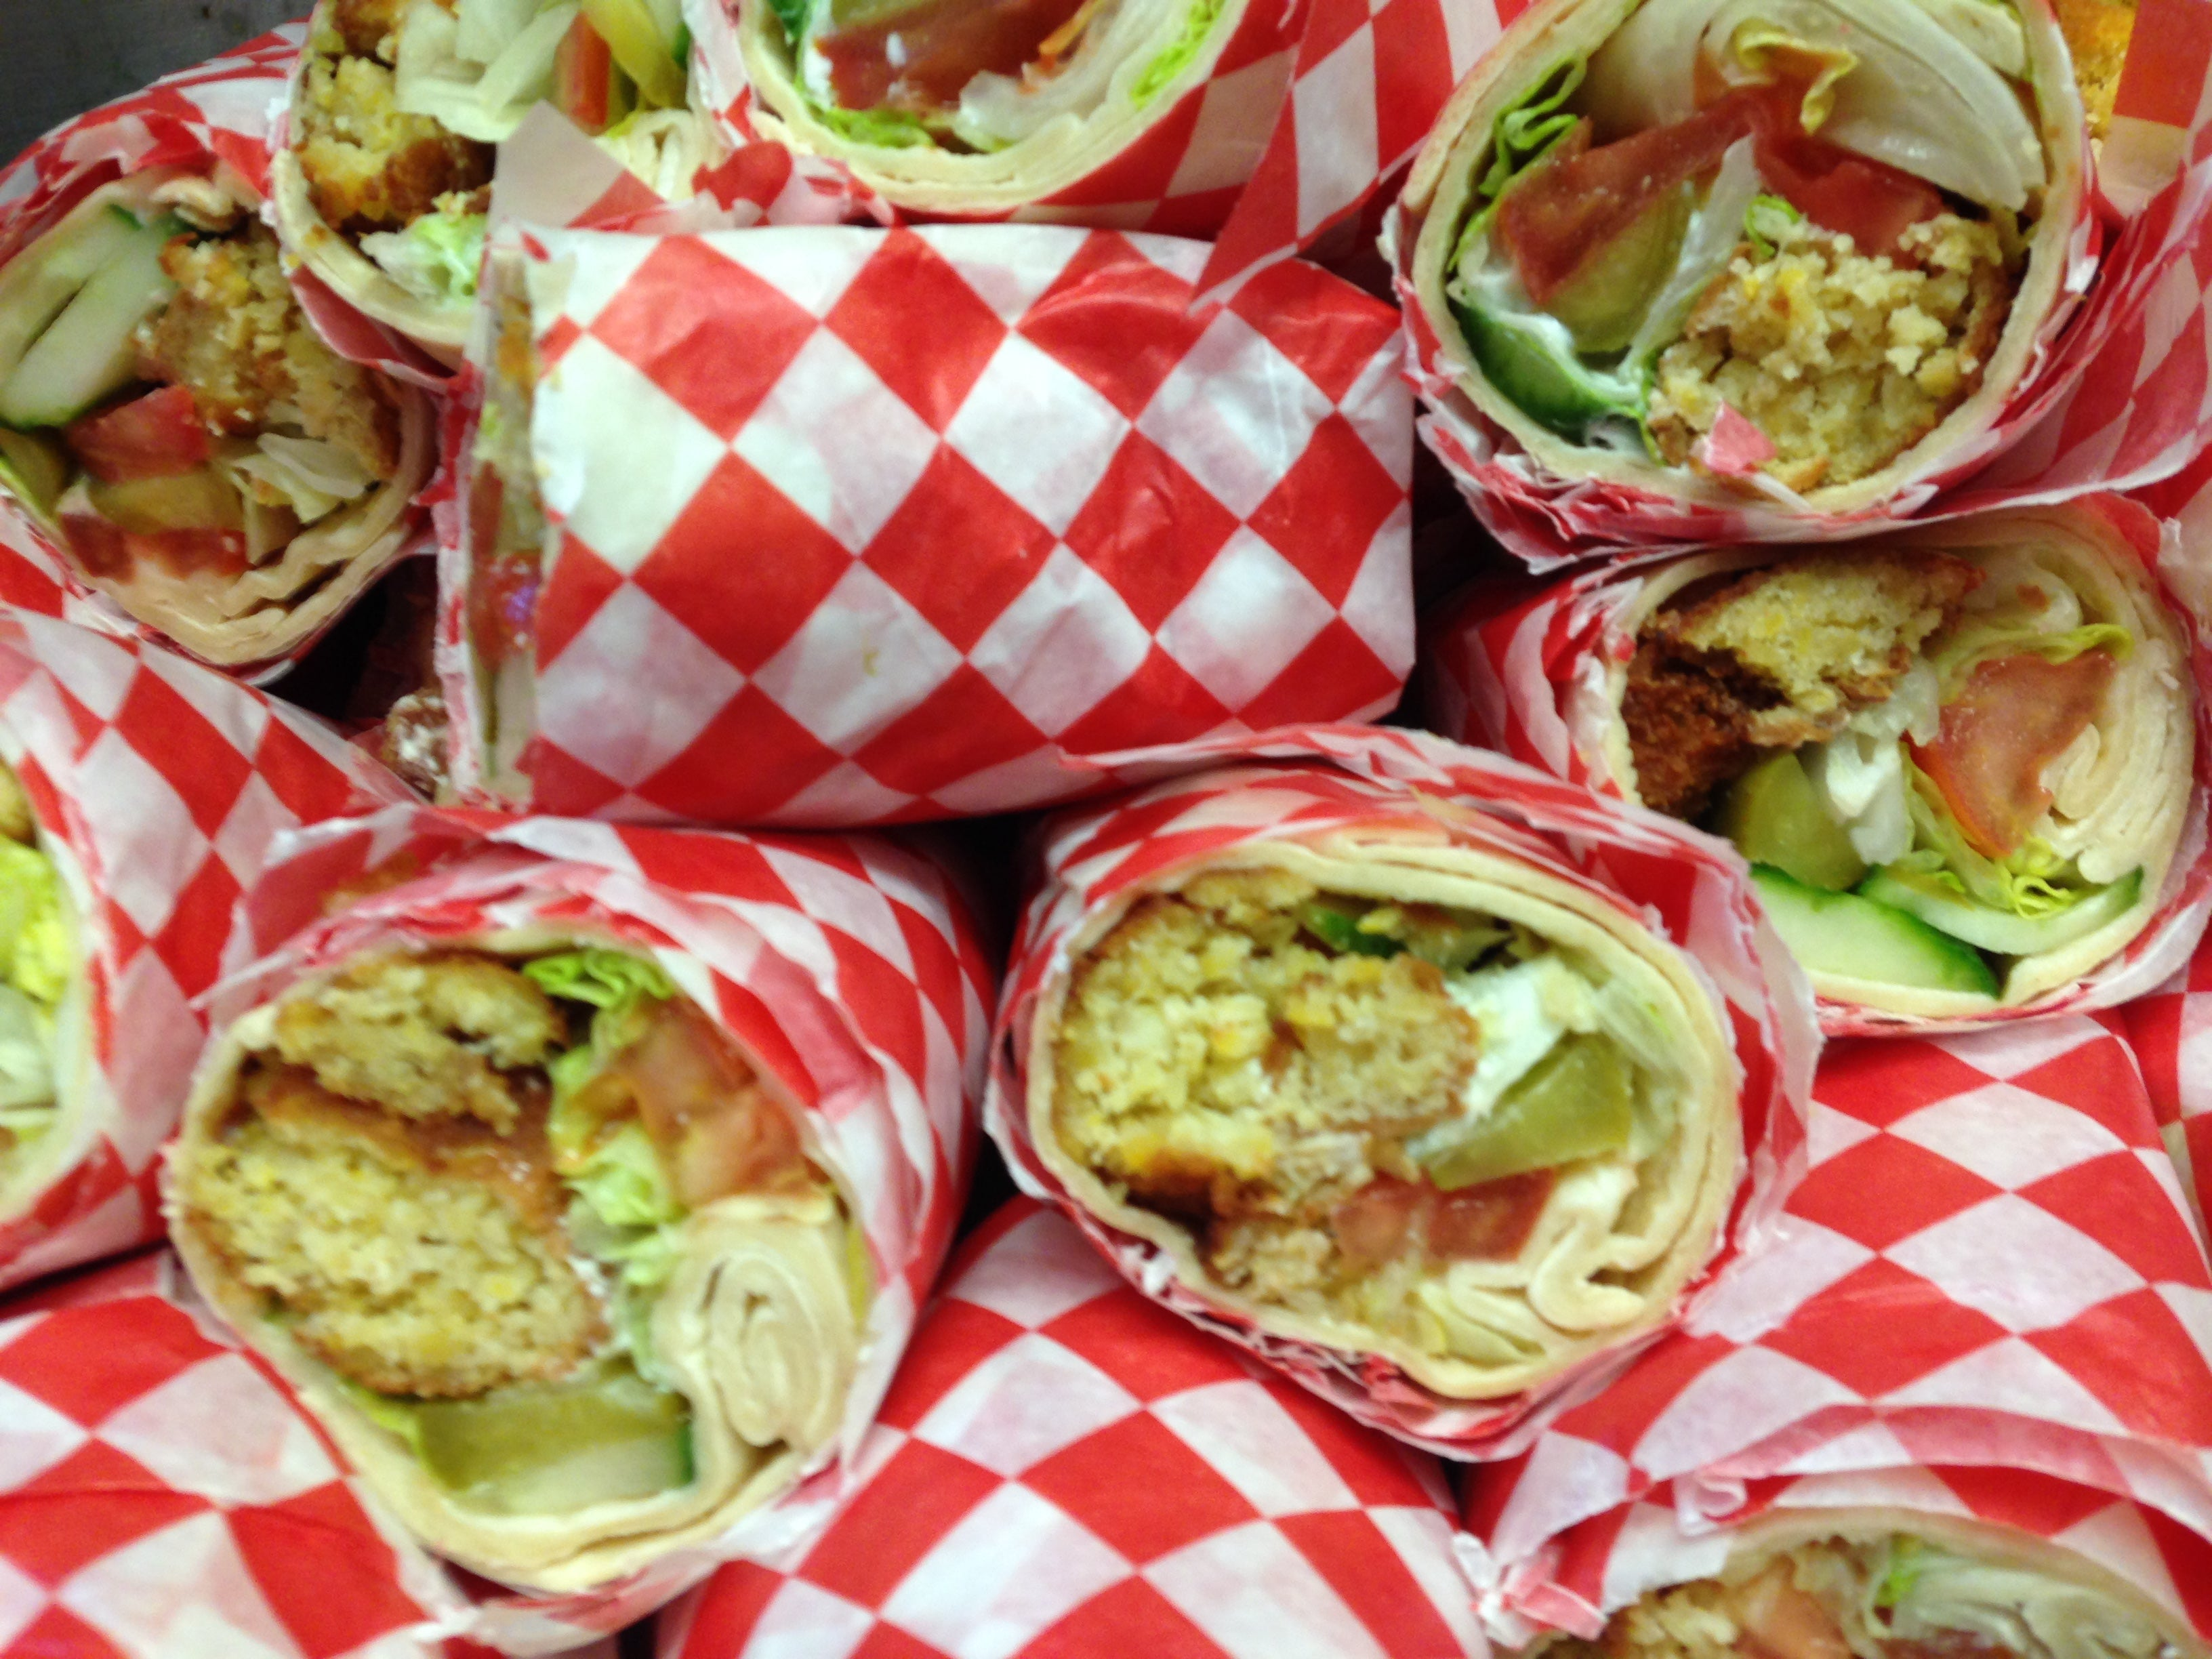 Lunch - Sandwiches & Wraps